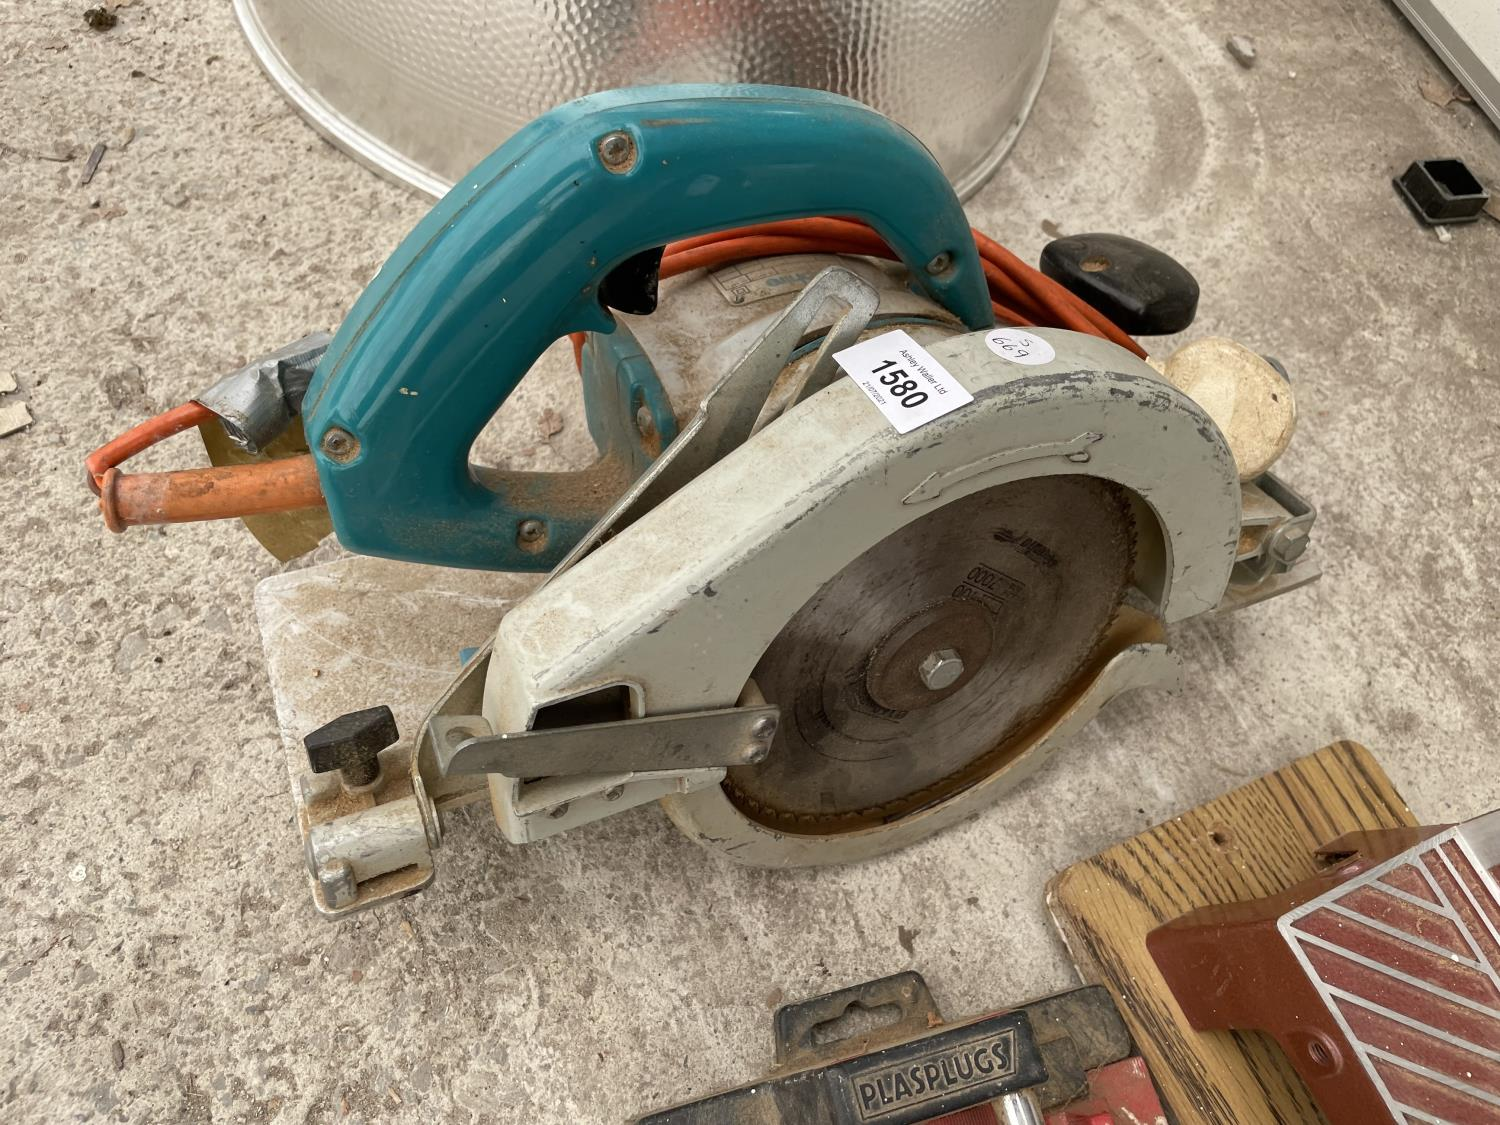 A WOLF CIRCULAR SAW AND TWO MITRE SAWS - Image 3 of 4